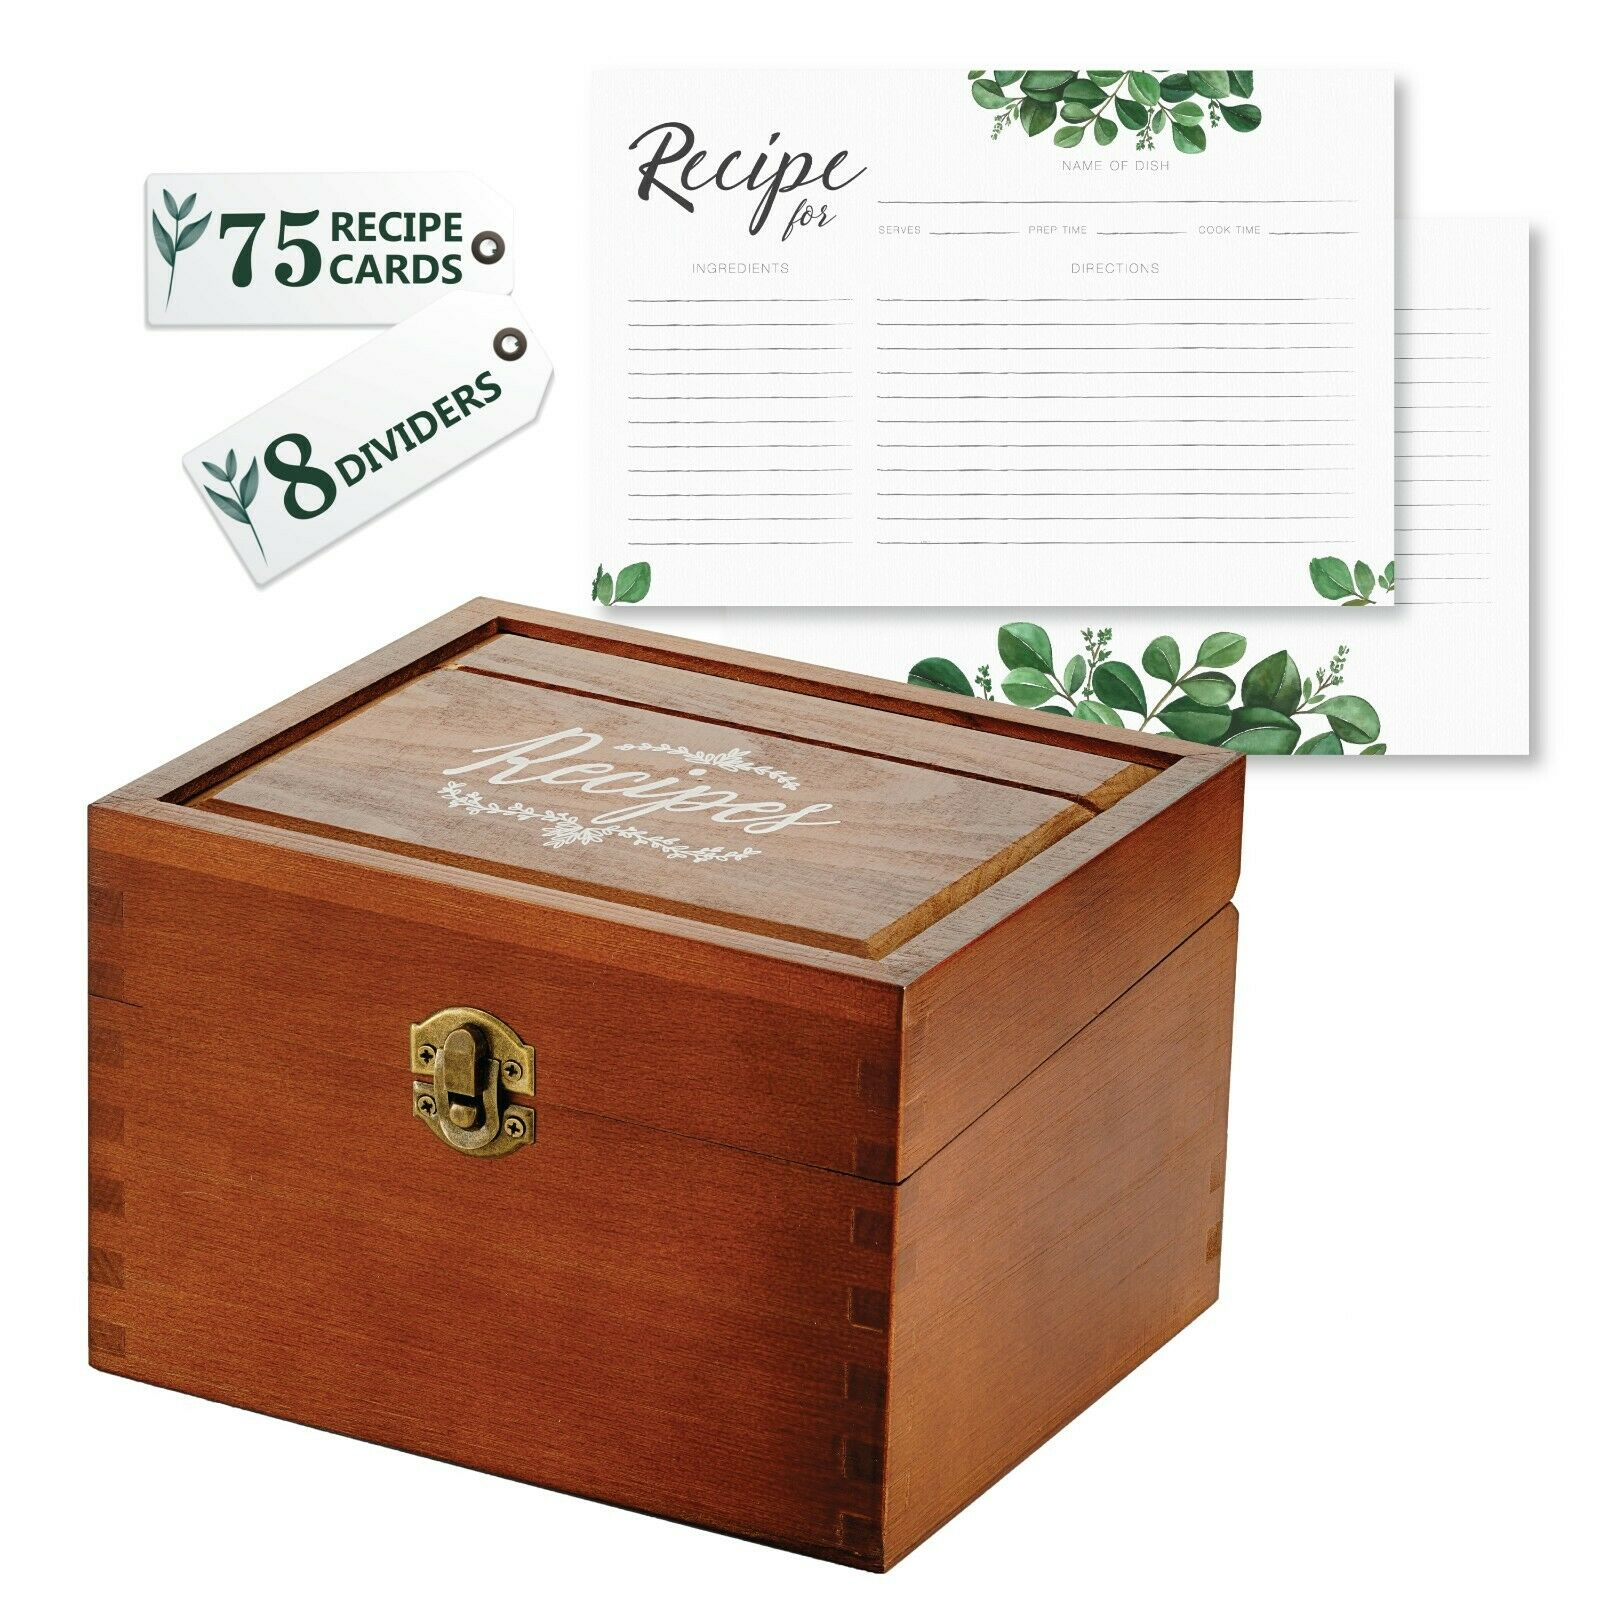 Recipe Card Box Set with 75 4x6 Recipe Cards + 8 Dividers -